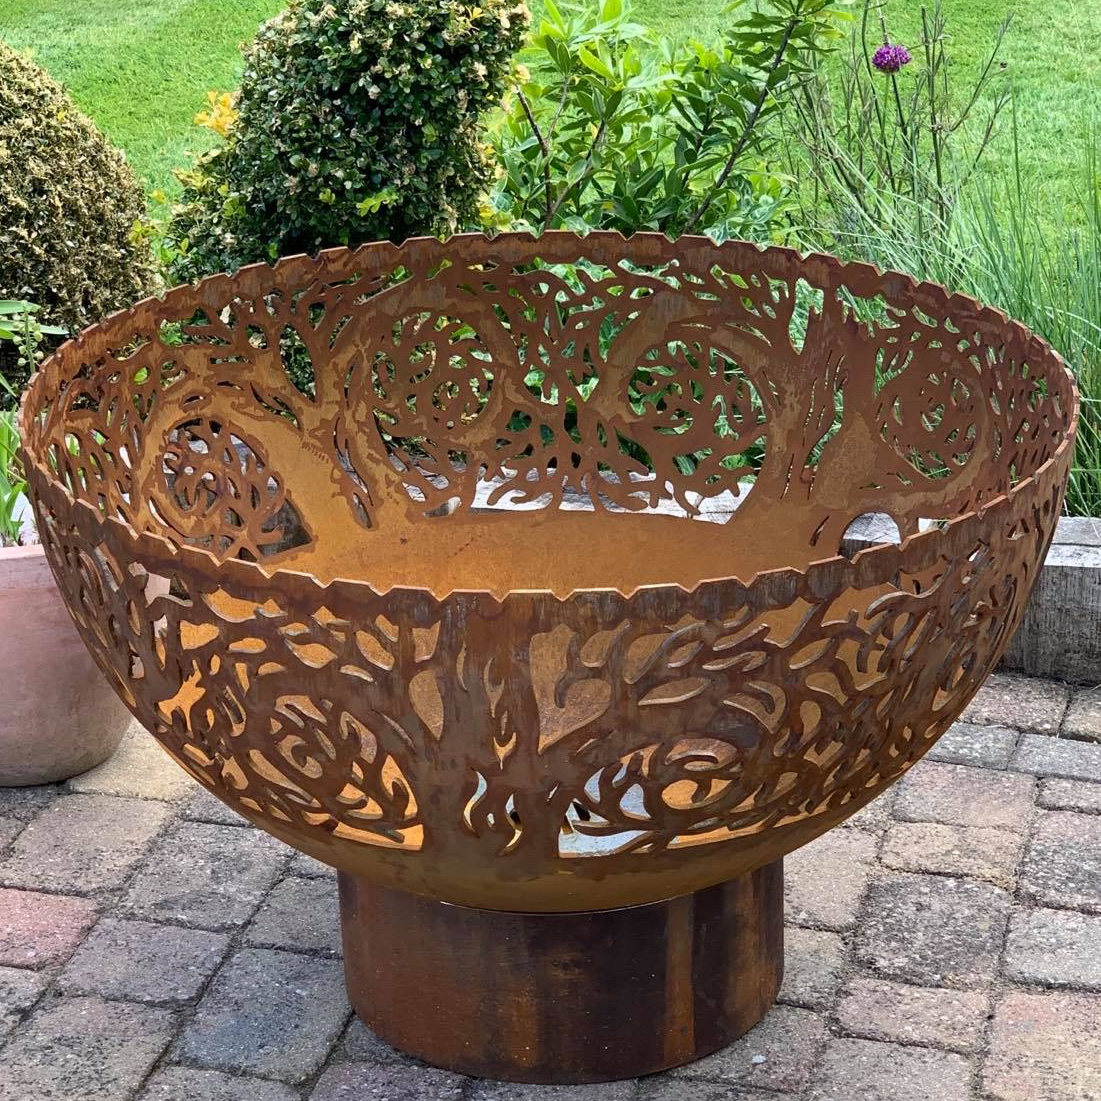 Twisted Tree firepit bowl by Andy Gage